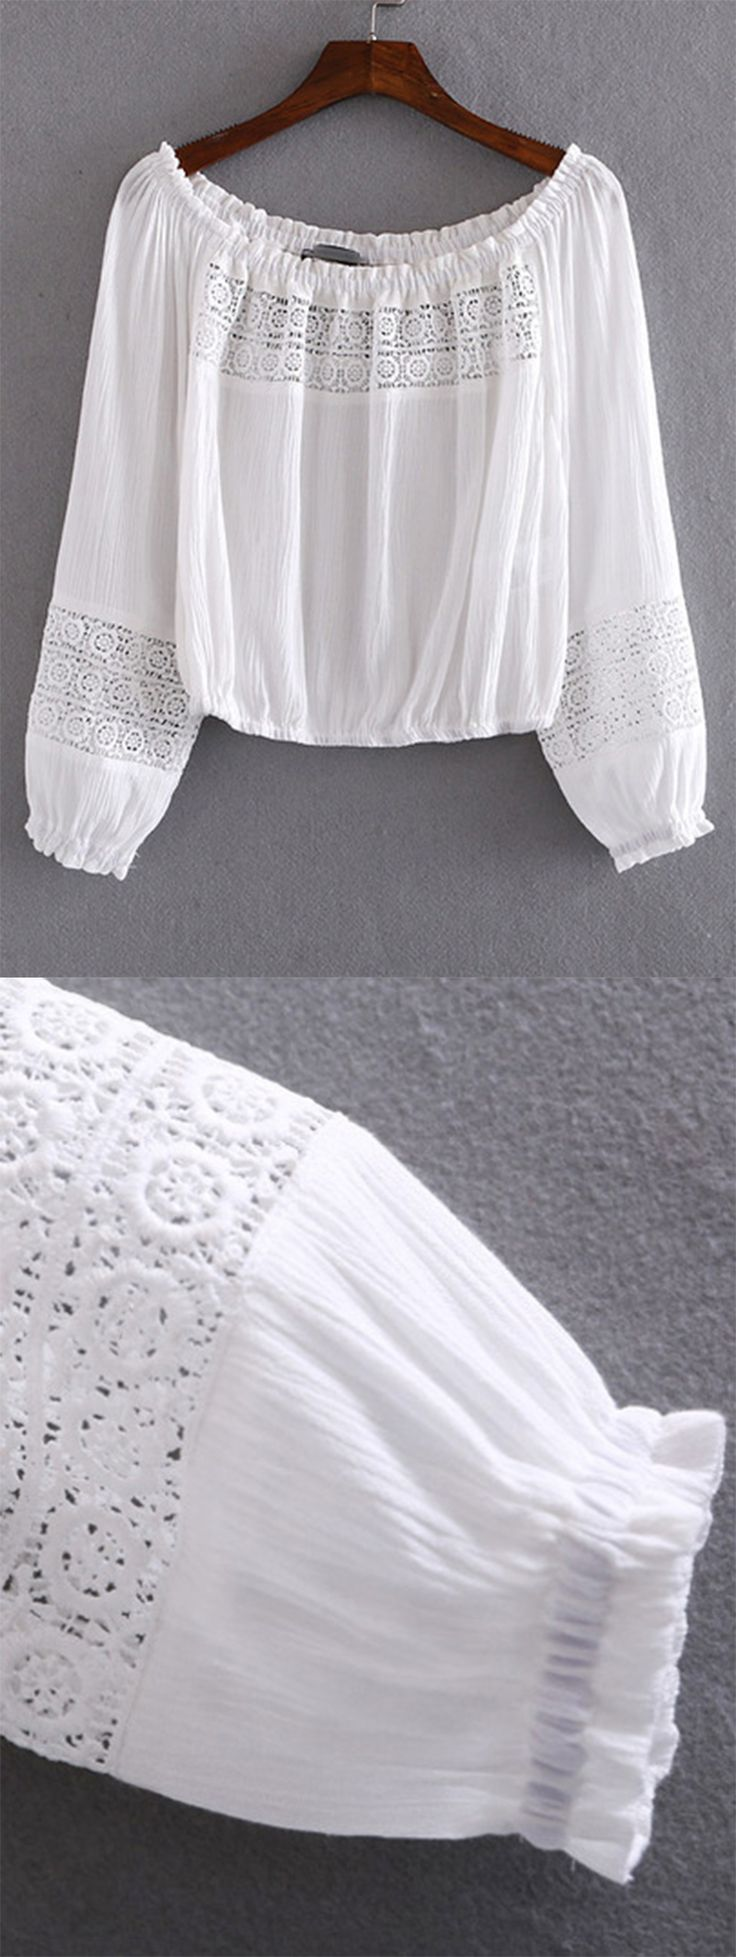 "White Boat Neck Elastic Cuff Crochet Blouse. Is this a really ""crochet"" blouse now? And if you like it, click to get it."